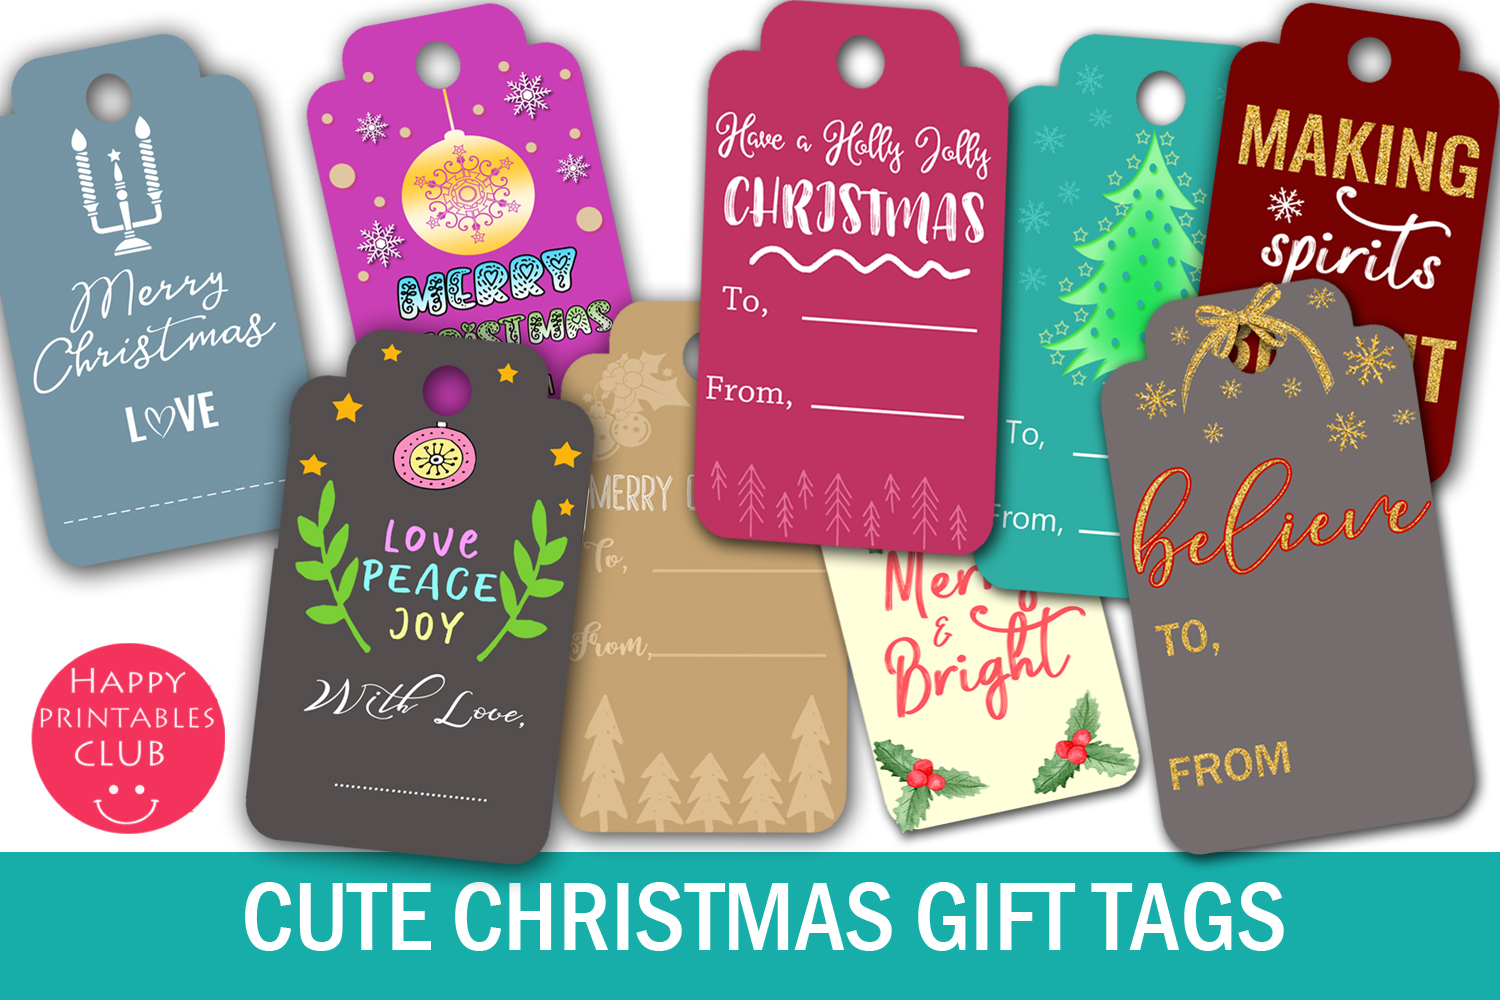 Download Free Christmas Gift Tags Graphic By Happy Printables Club Creative Fabrica for Cricut Explore, Silhouette and other cutting machines.